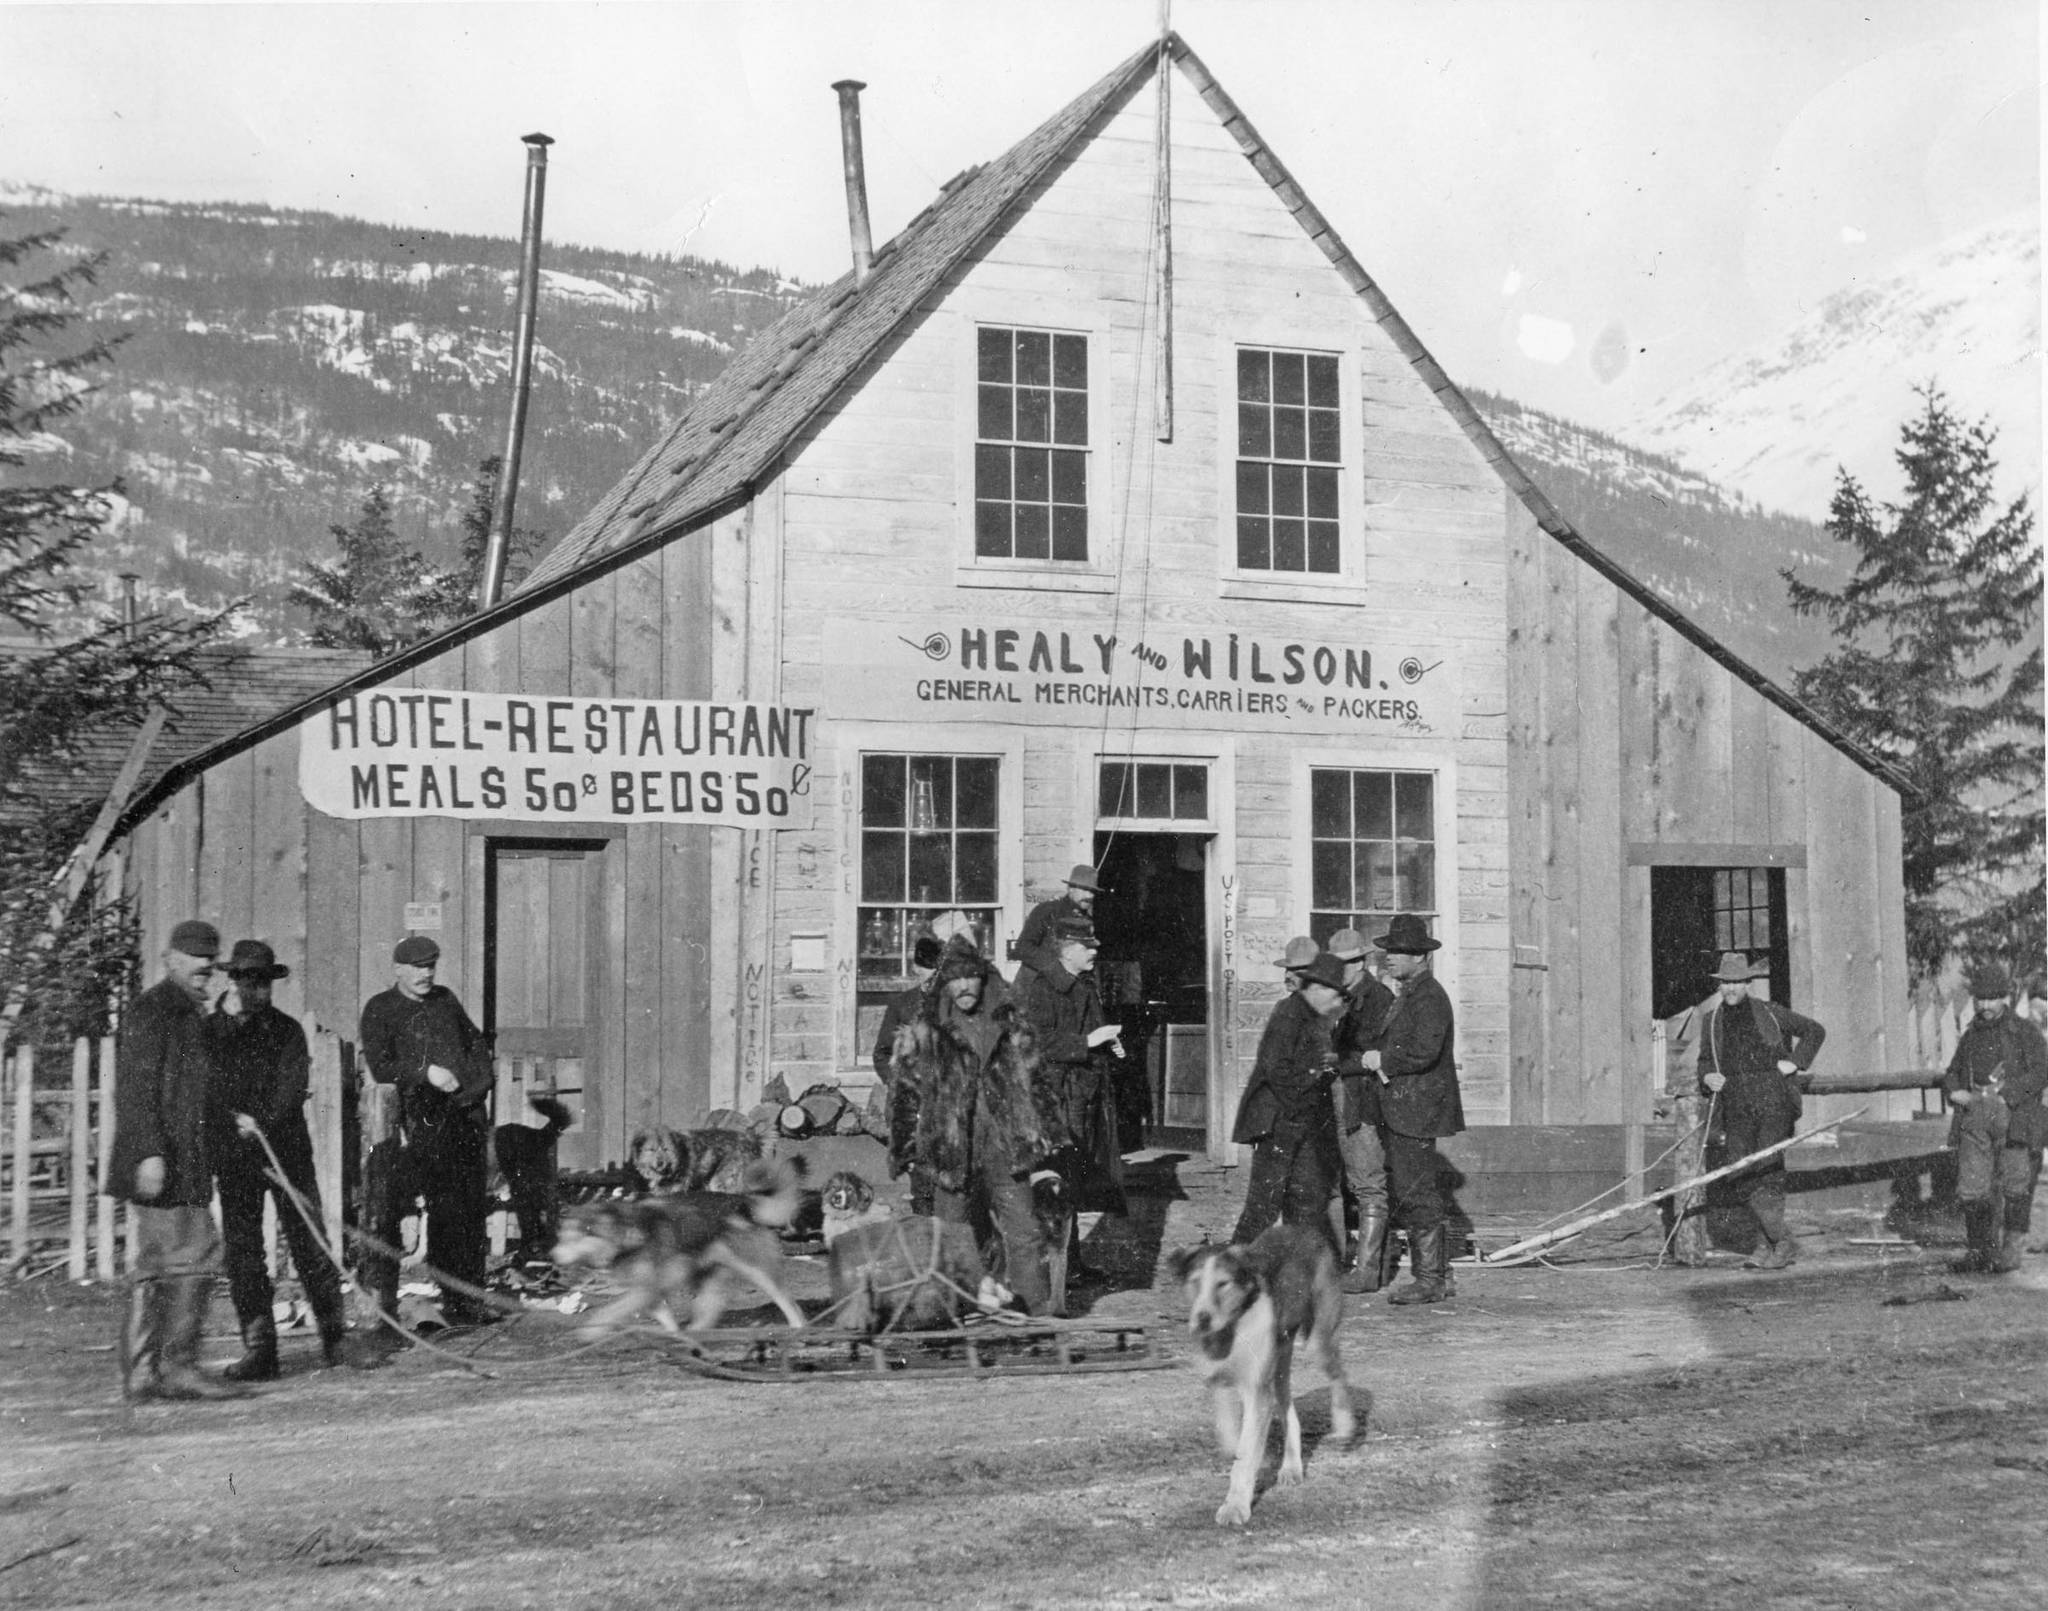 Healy & Wilson's Trading Post in 1898. (National Archives, Collection of Brig. Gen. David L. Brainard, 200(S)-BR-1-A-10C; KLGO HW-10-1082)